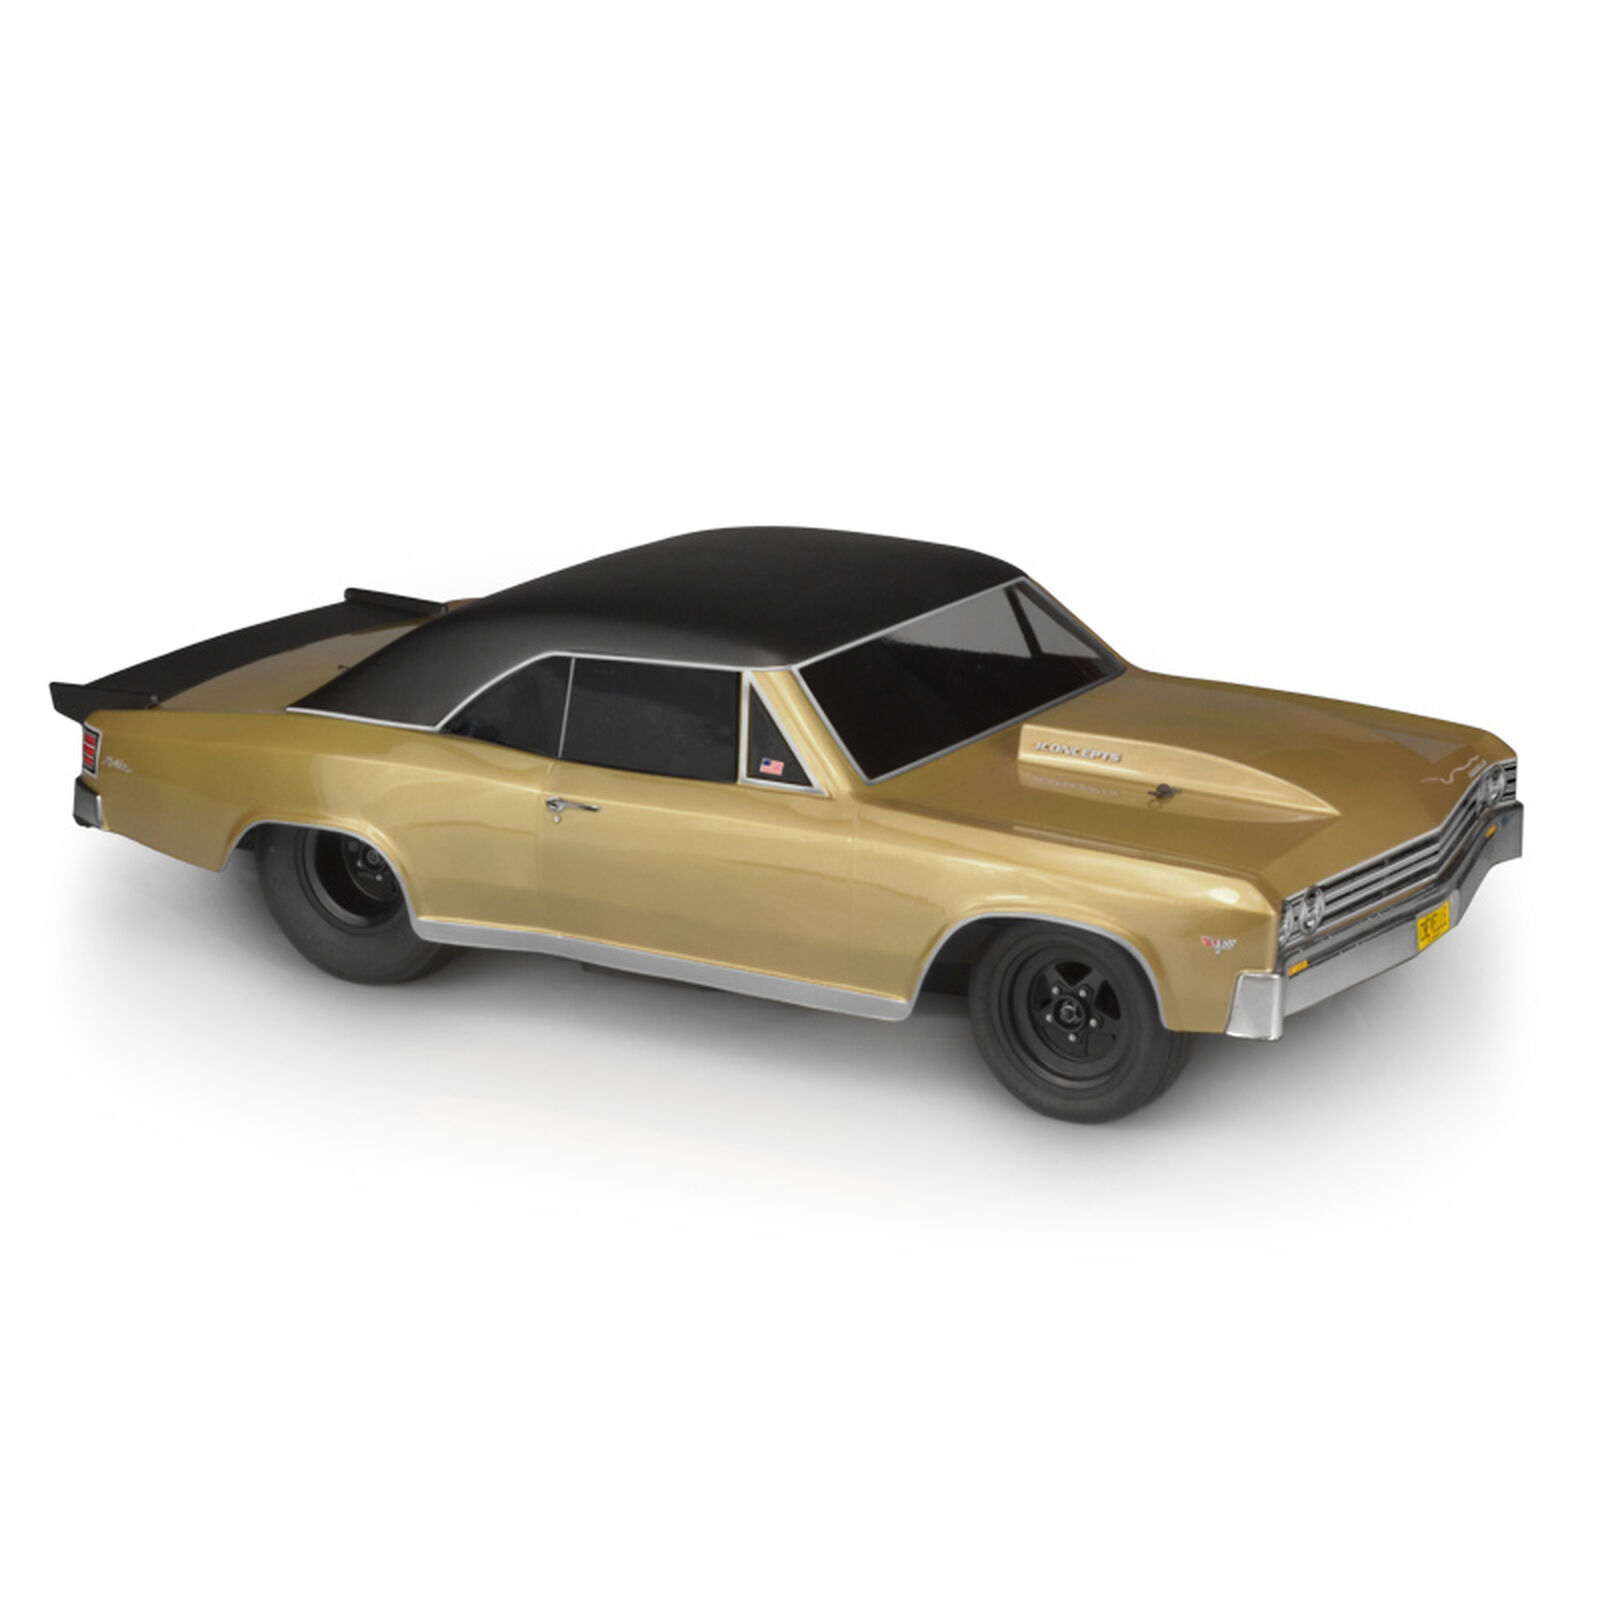 1/10 1967 Chevy Chevelle SCT Clear Body